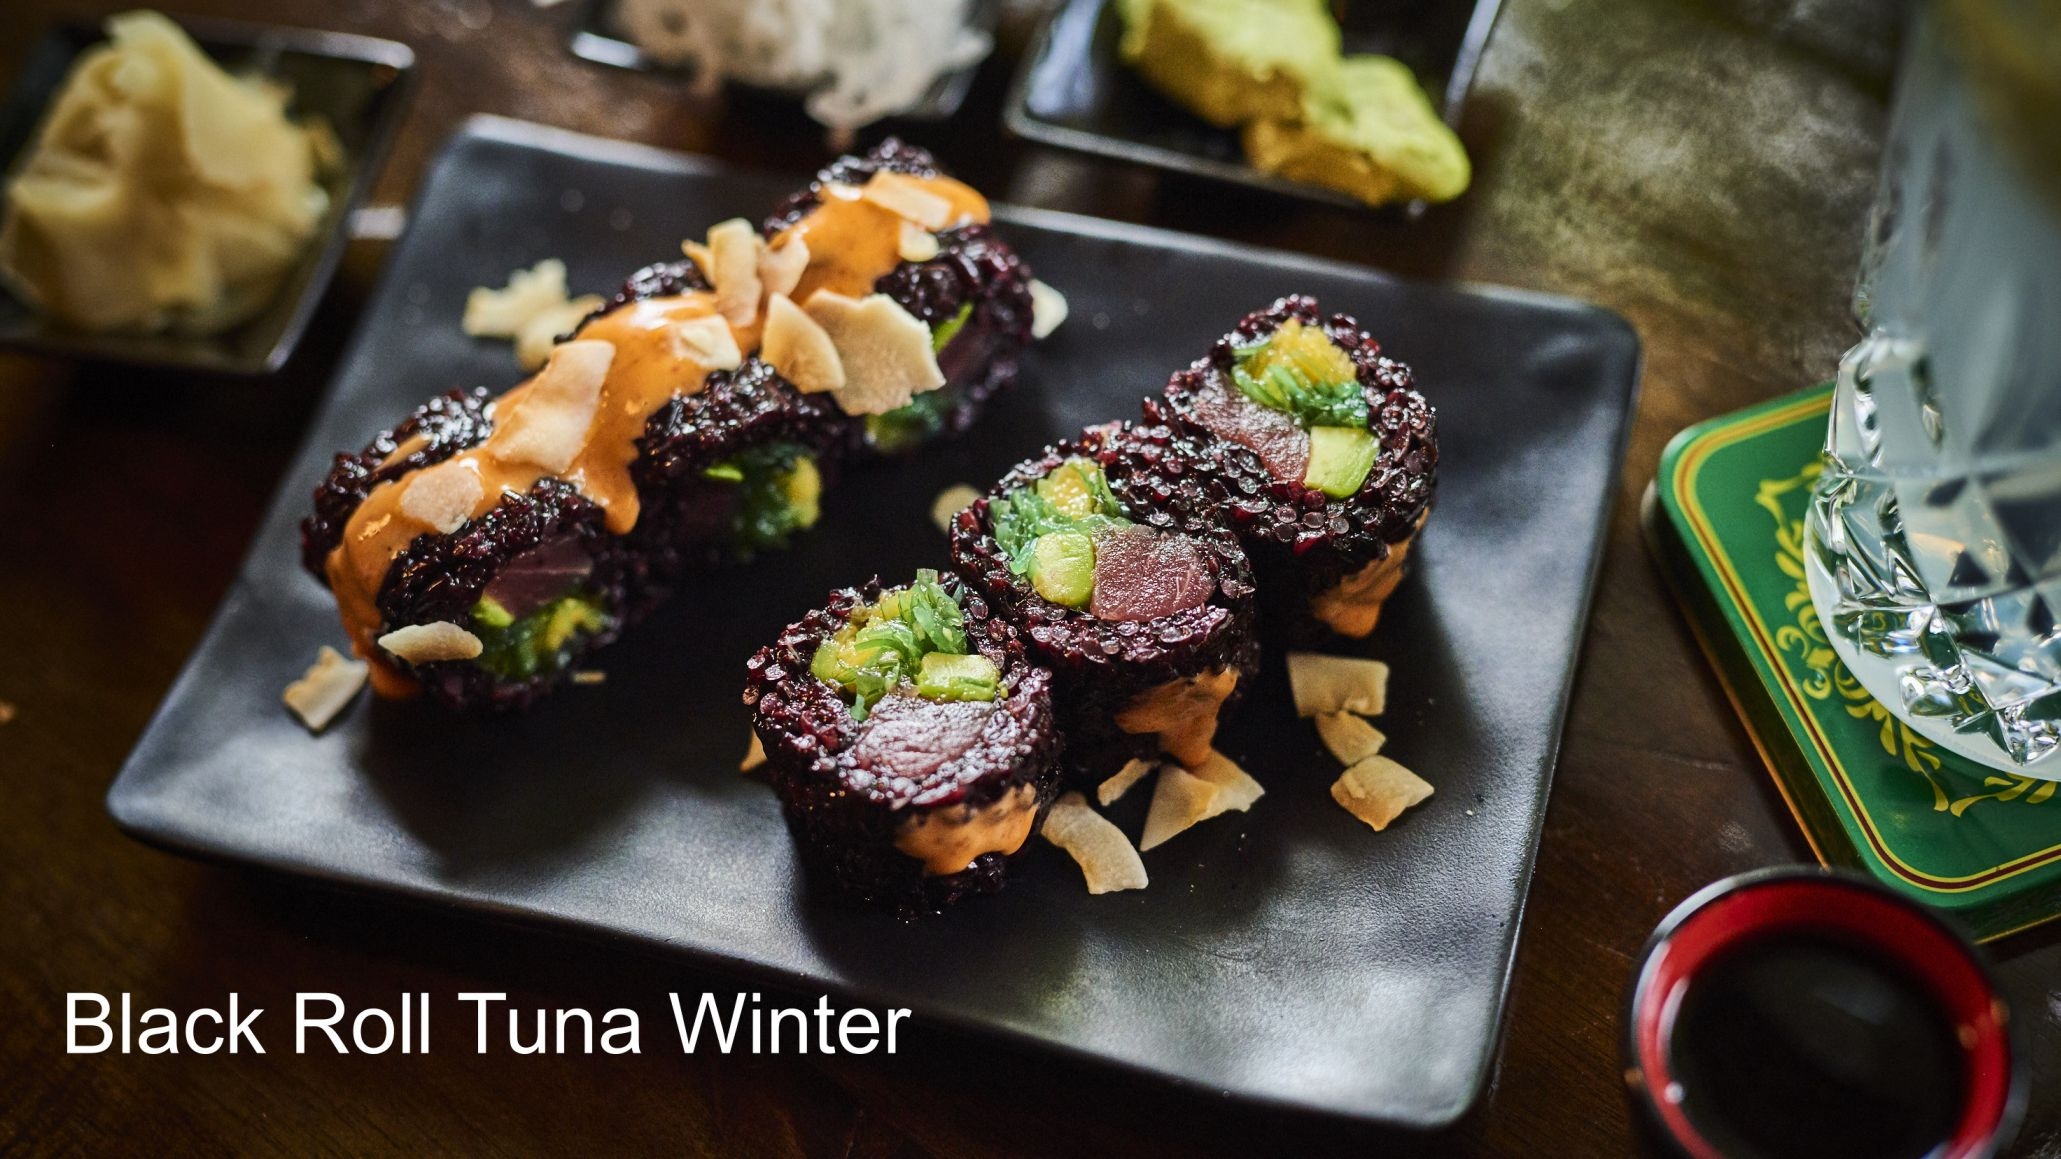 12_Black_Roll_Tuna_Winter.jpg